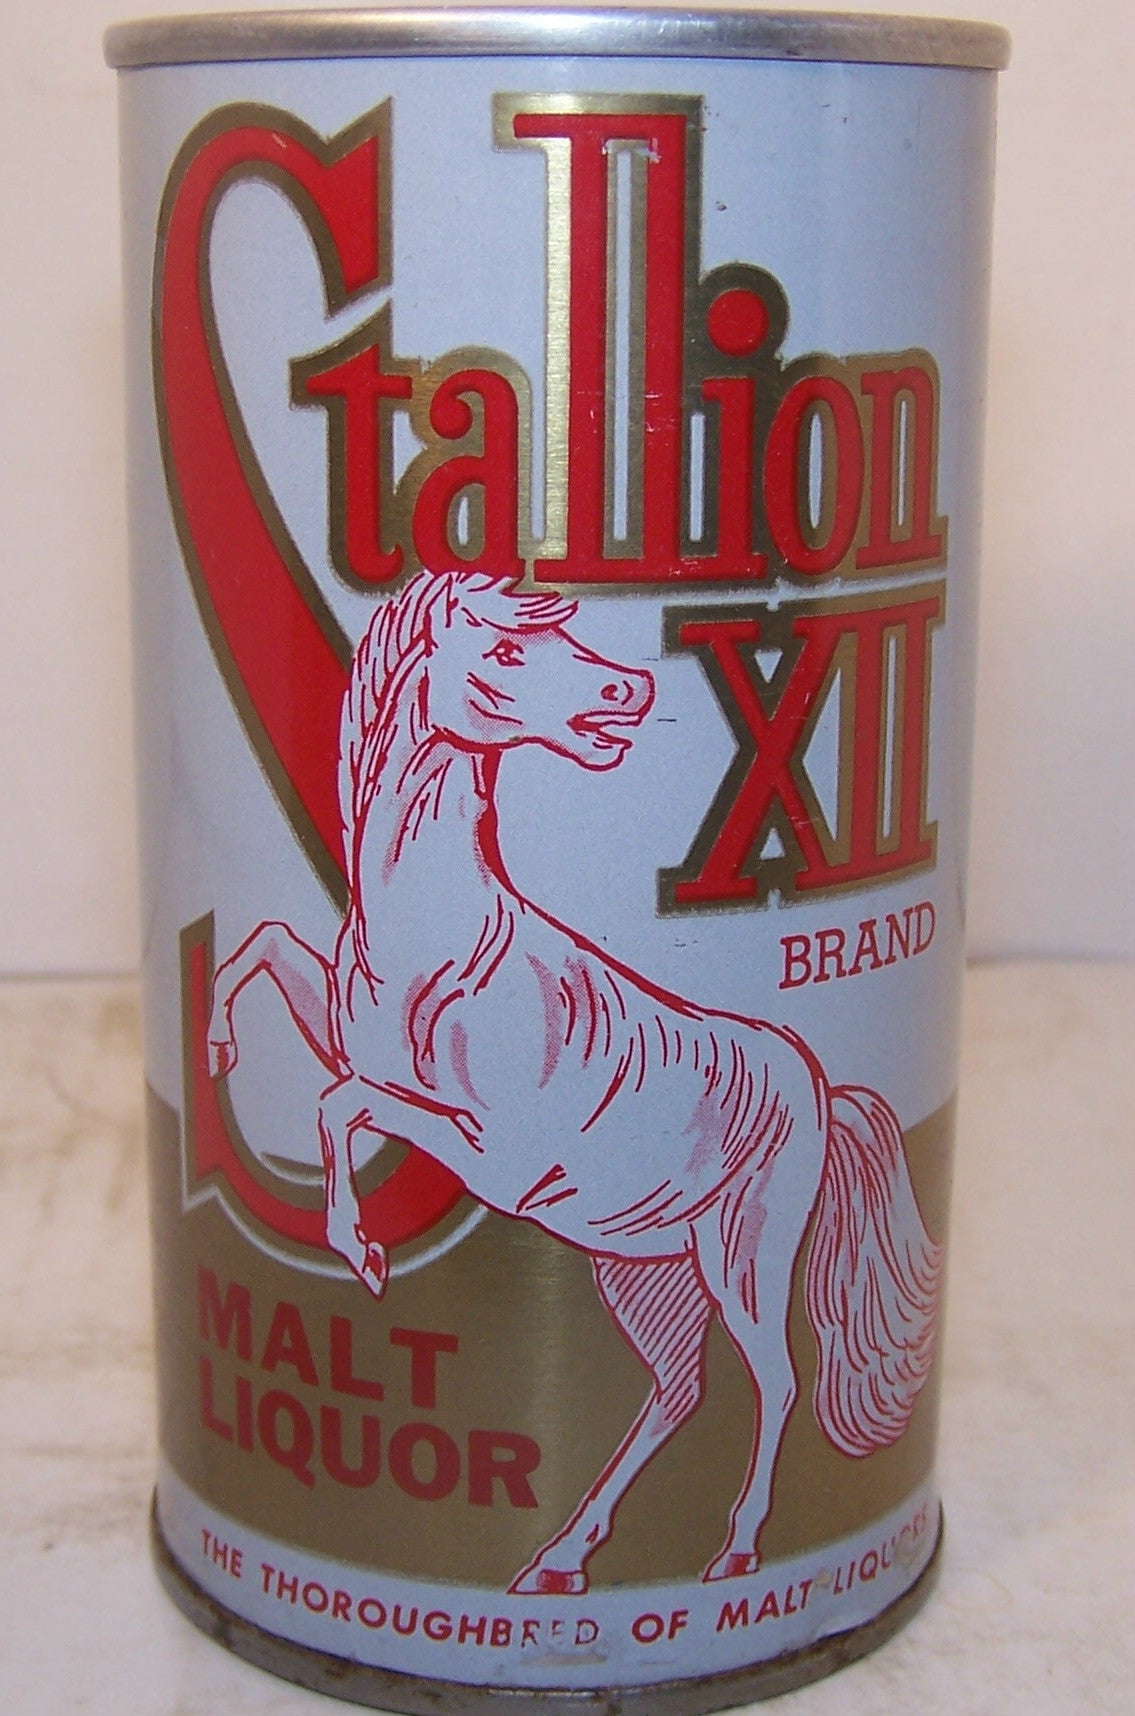 Stallion XII Malt Liquor enamel, USBC II 126-4 clean, Grade A1+ Traded on 04/02/17